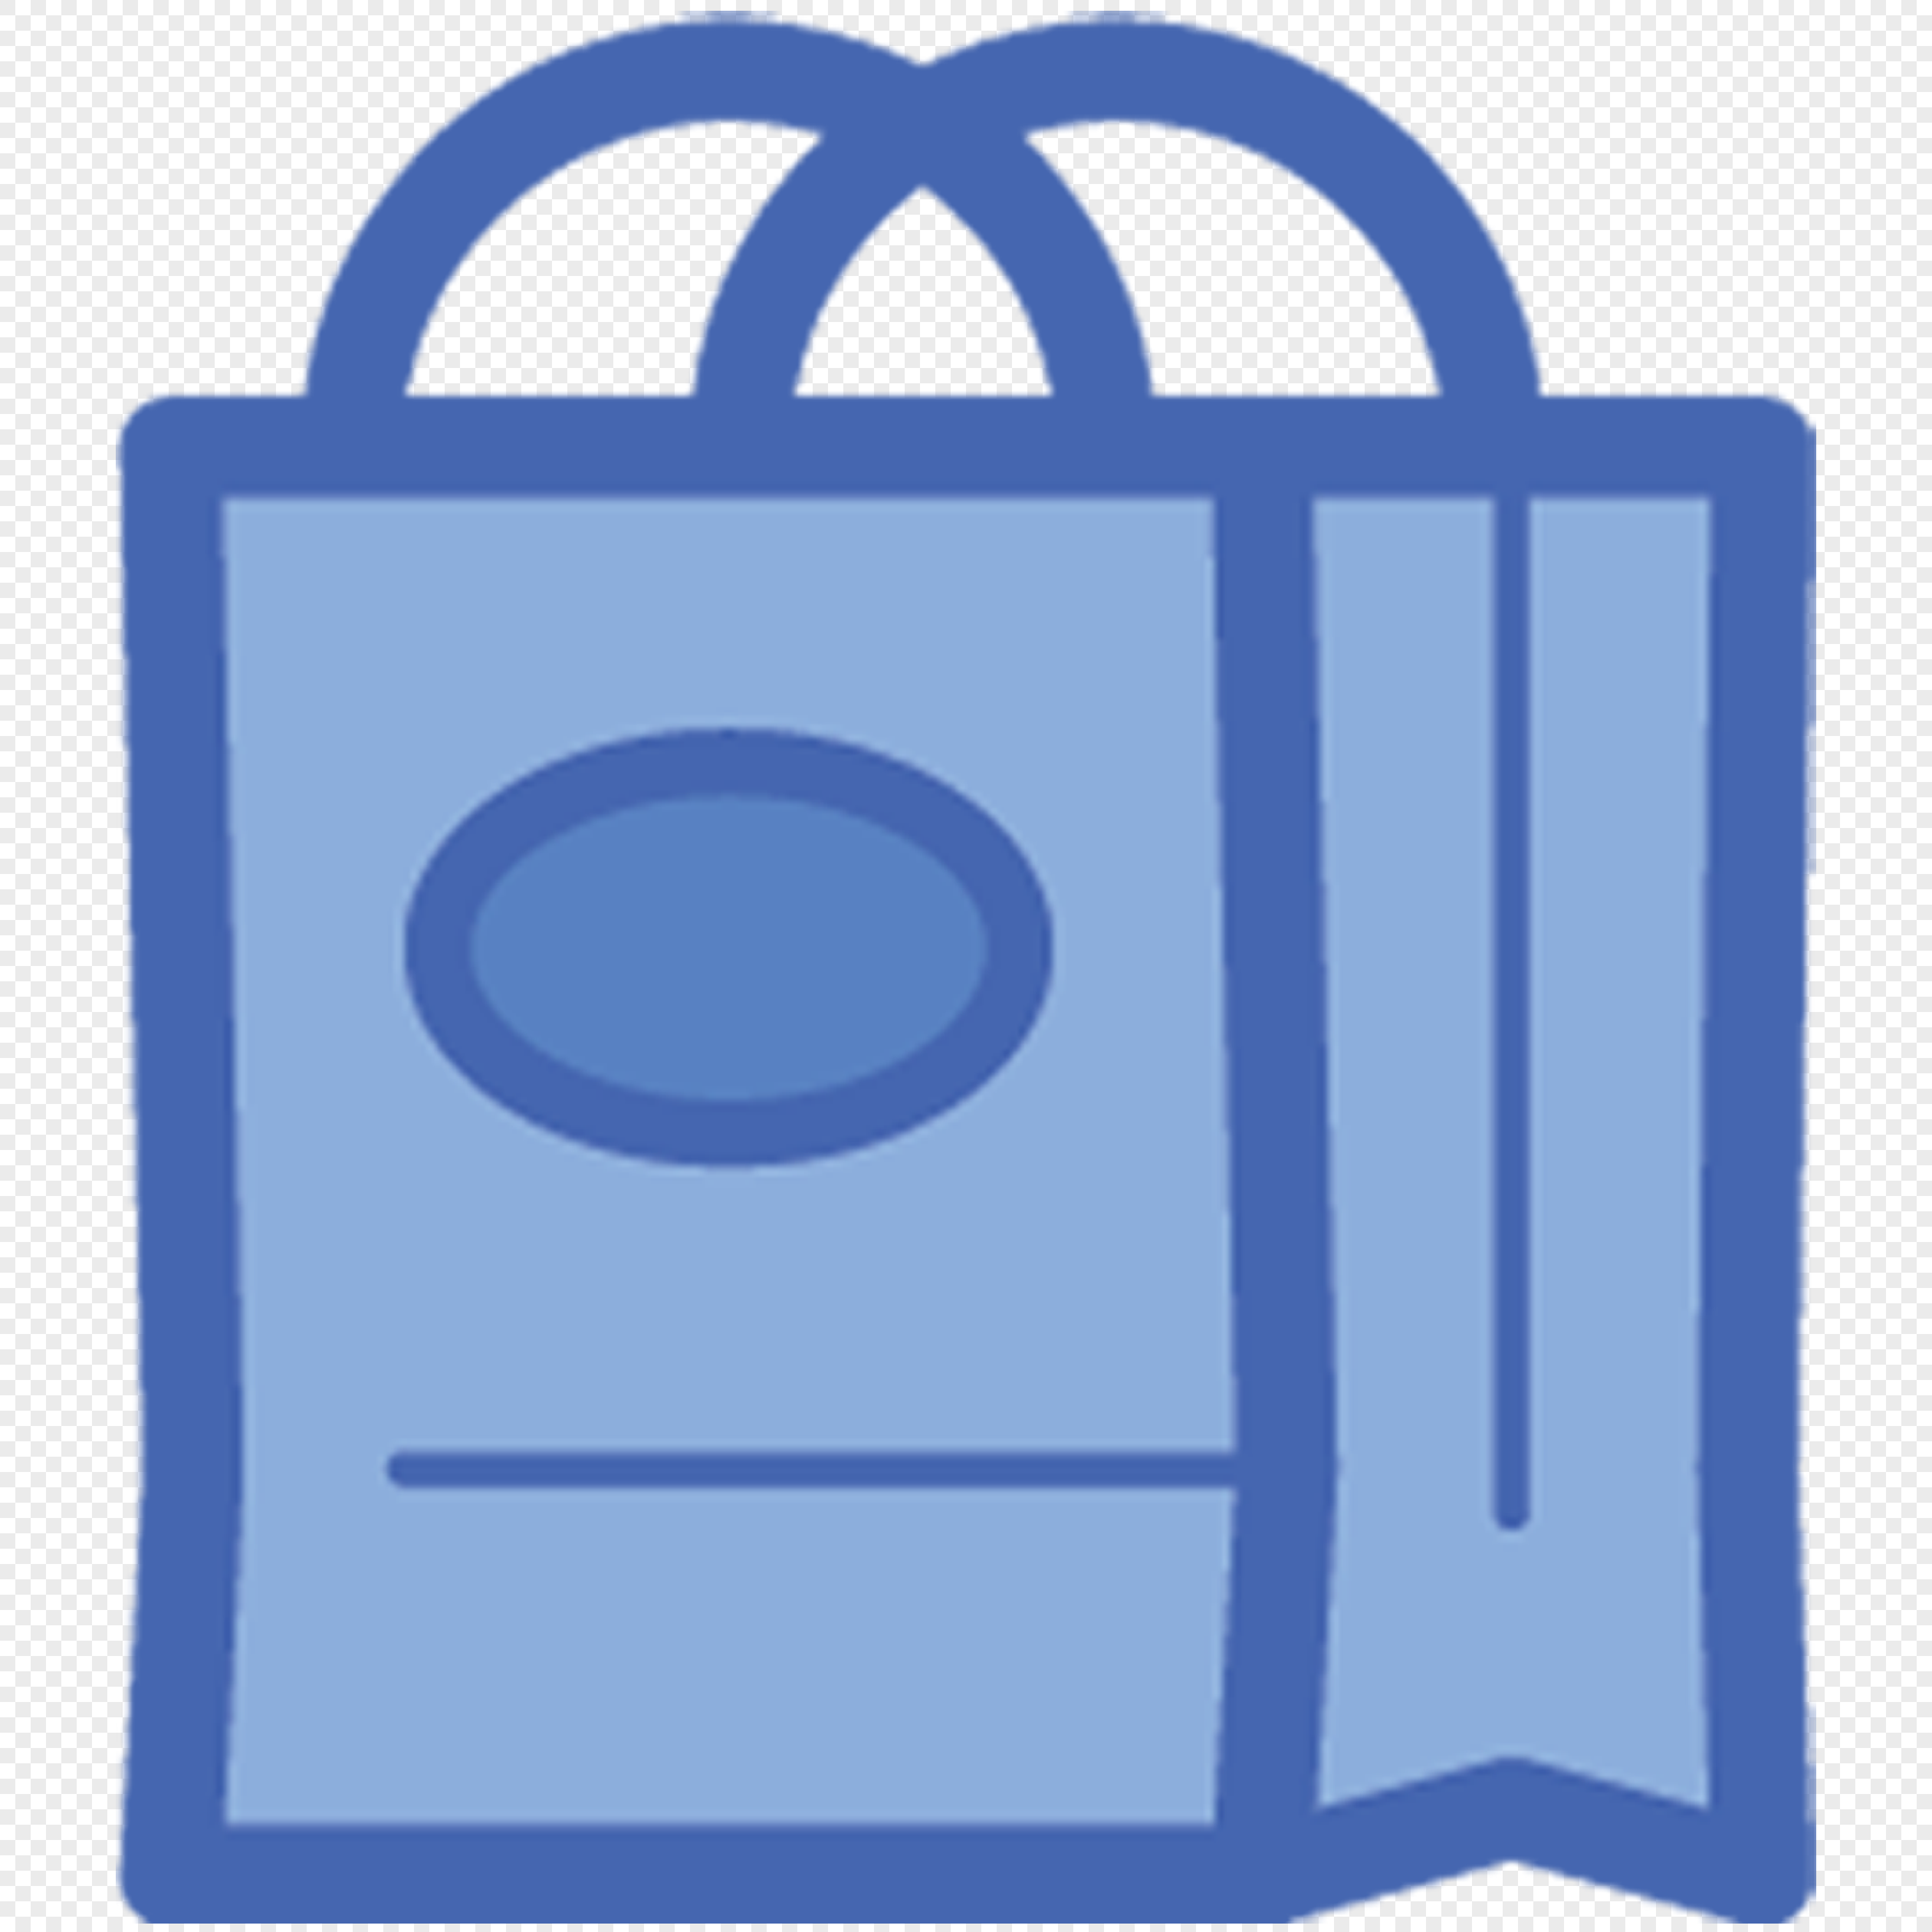 Shopping Bag Png Image Picture Free Download 400745900 Lovepik Com